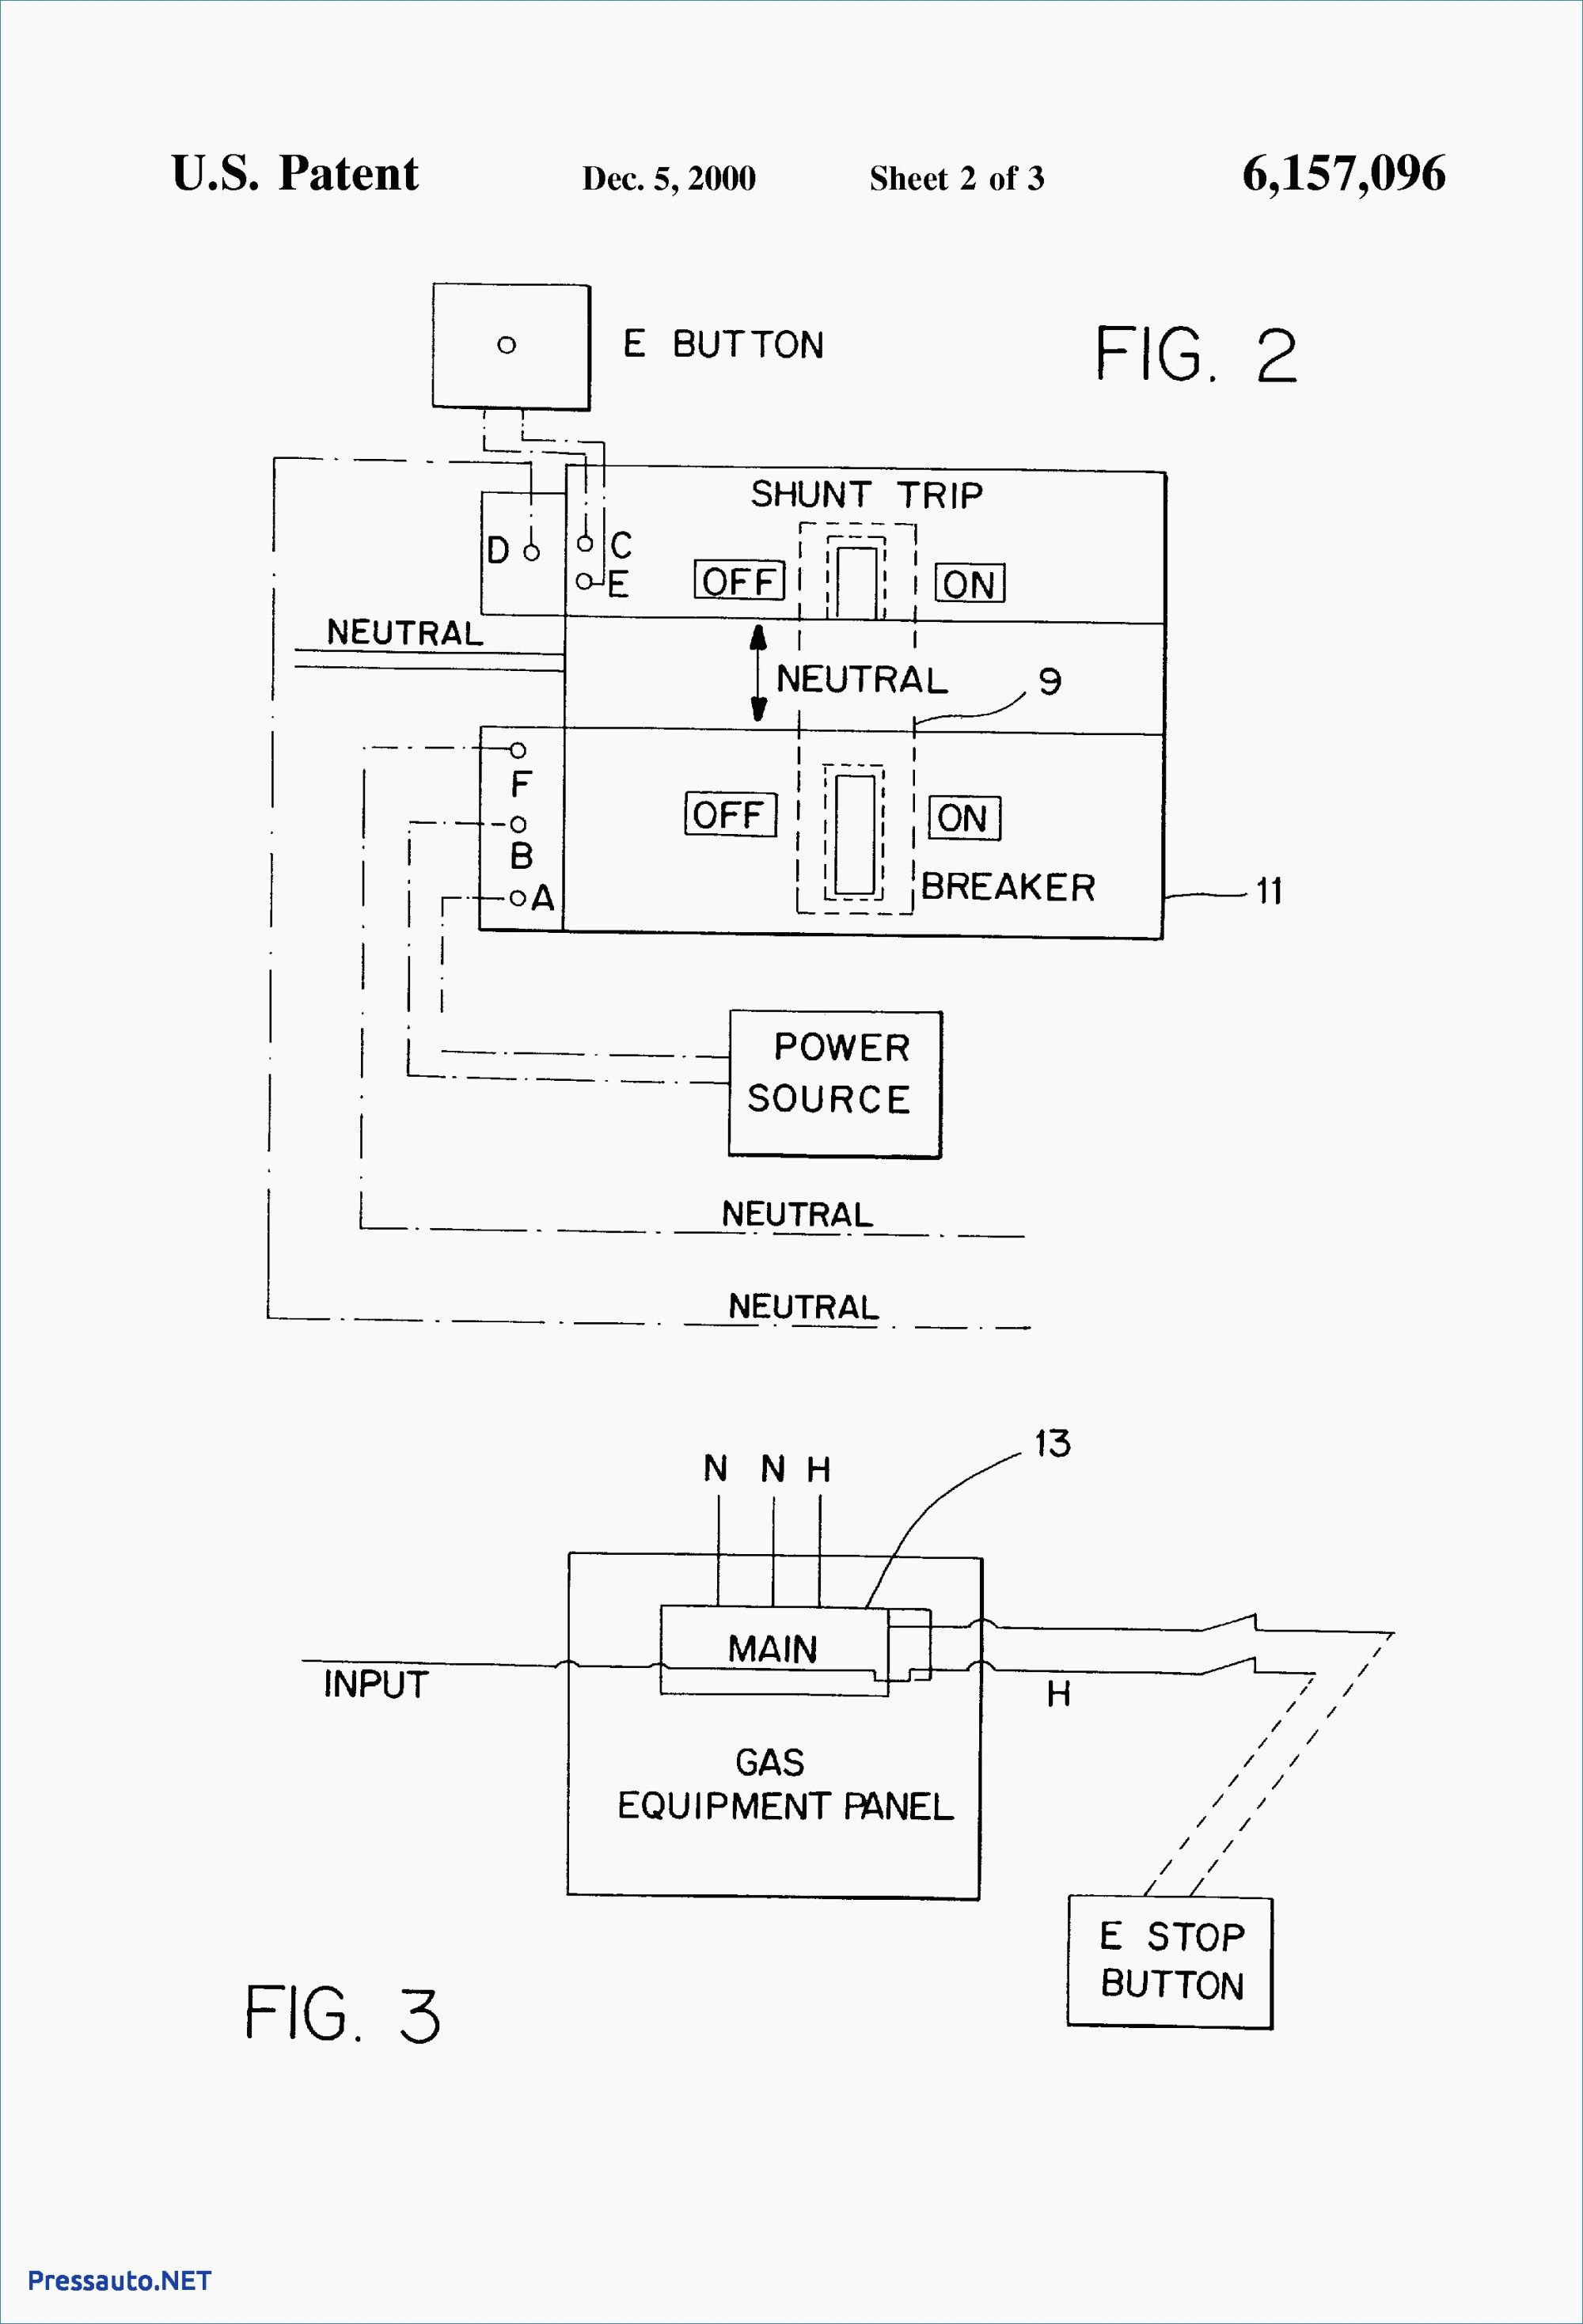 hight resolution of siemens shunt trip breaker wiring diagram siemens shunt trip breaker wiring diagram with square d